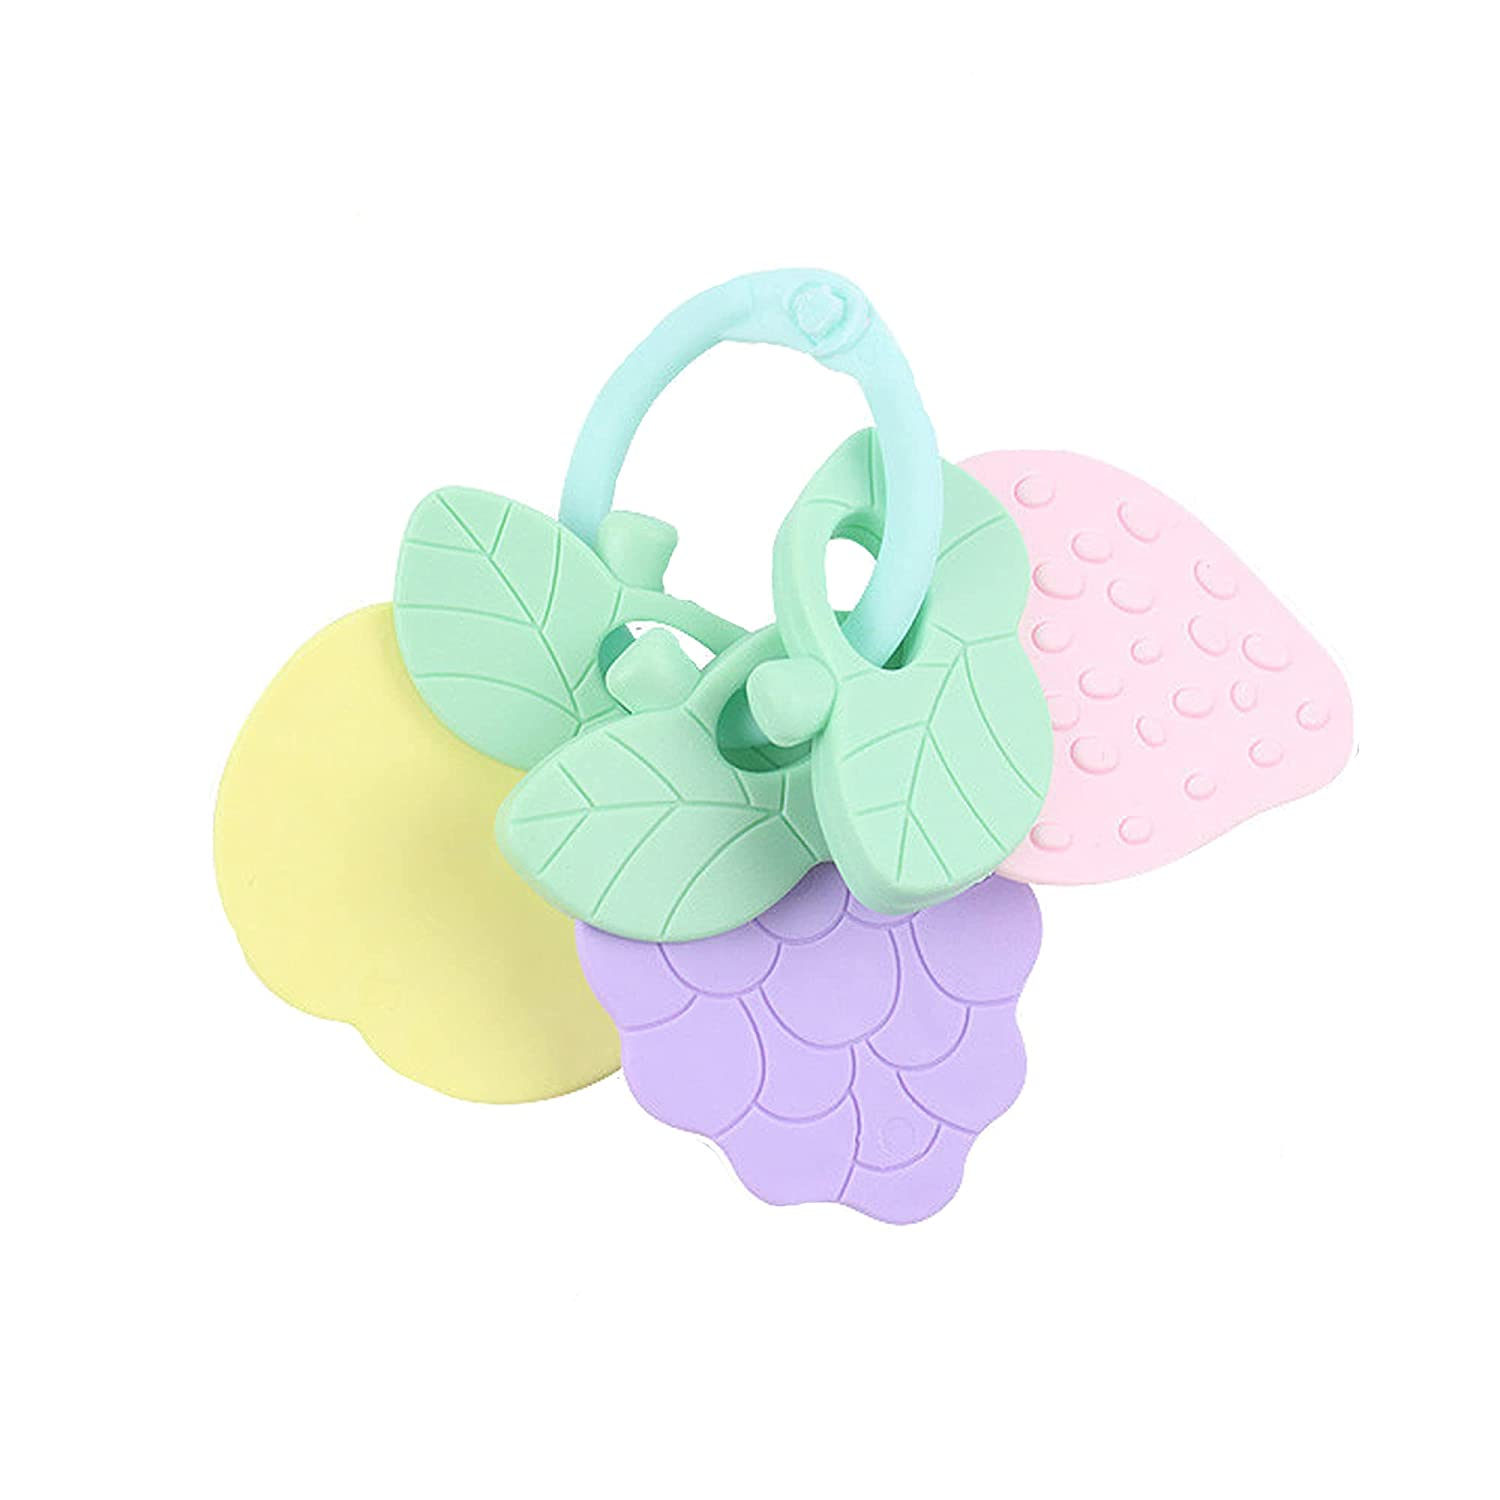 Baby Fruit teether molars Mother and Baby Toys (Multicolor)